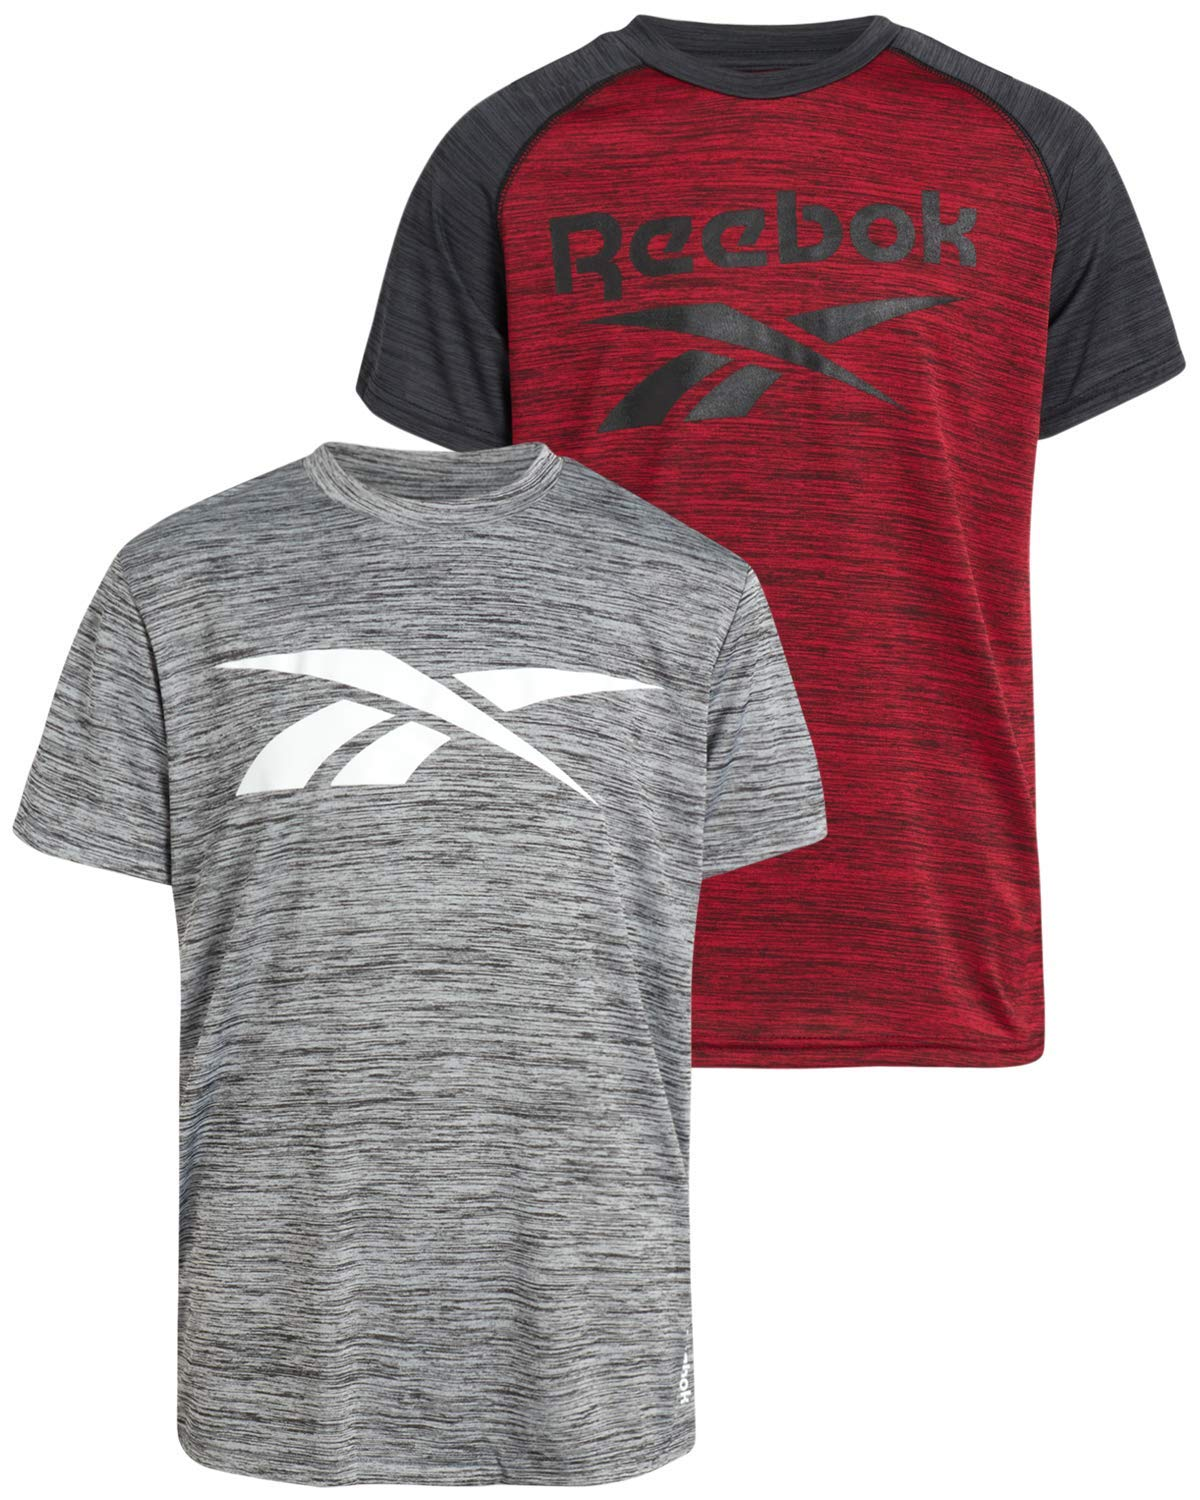 Reebok Boys Quick Dry Athletic Performance T-Shirts (2 Pack)